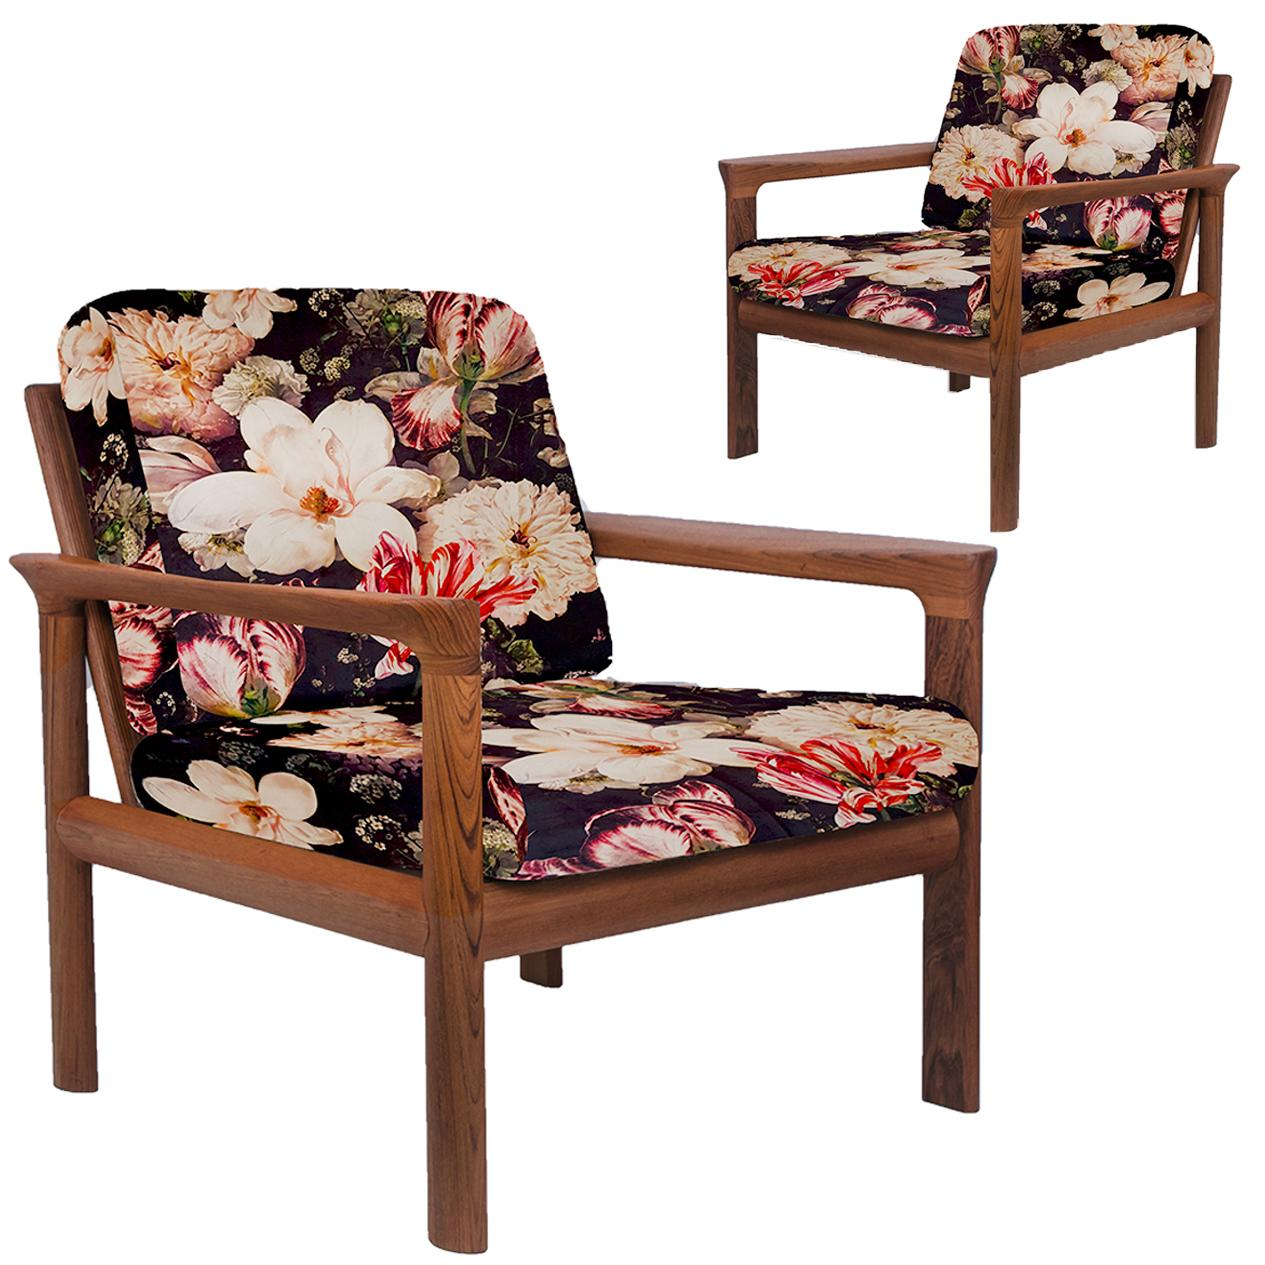 floral upholstered chair ashley furniture wingback chairs pair of new velvet sculptural easy by sven ellekaer for sale